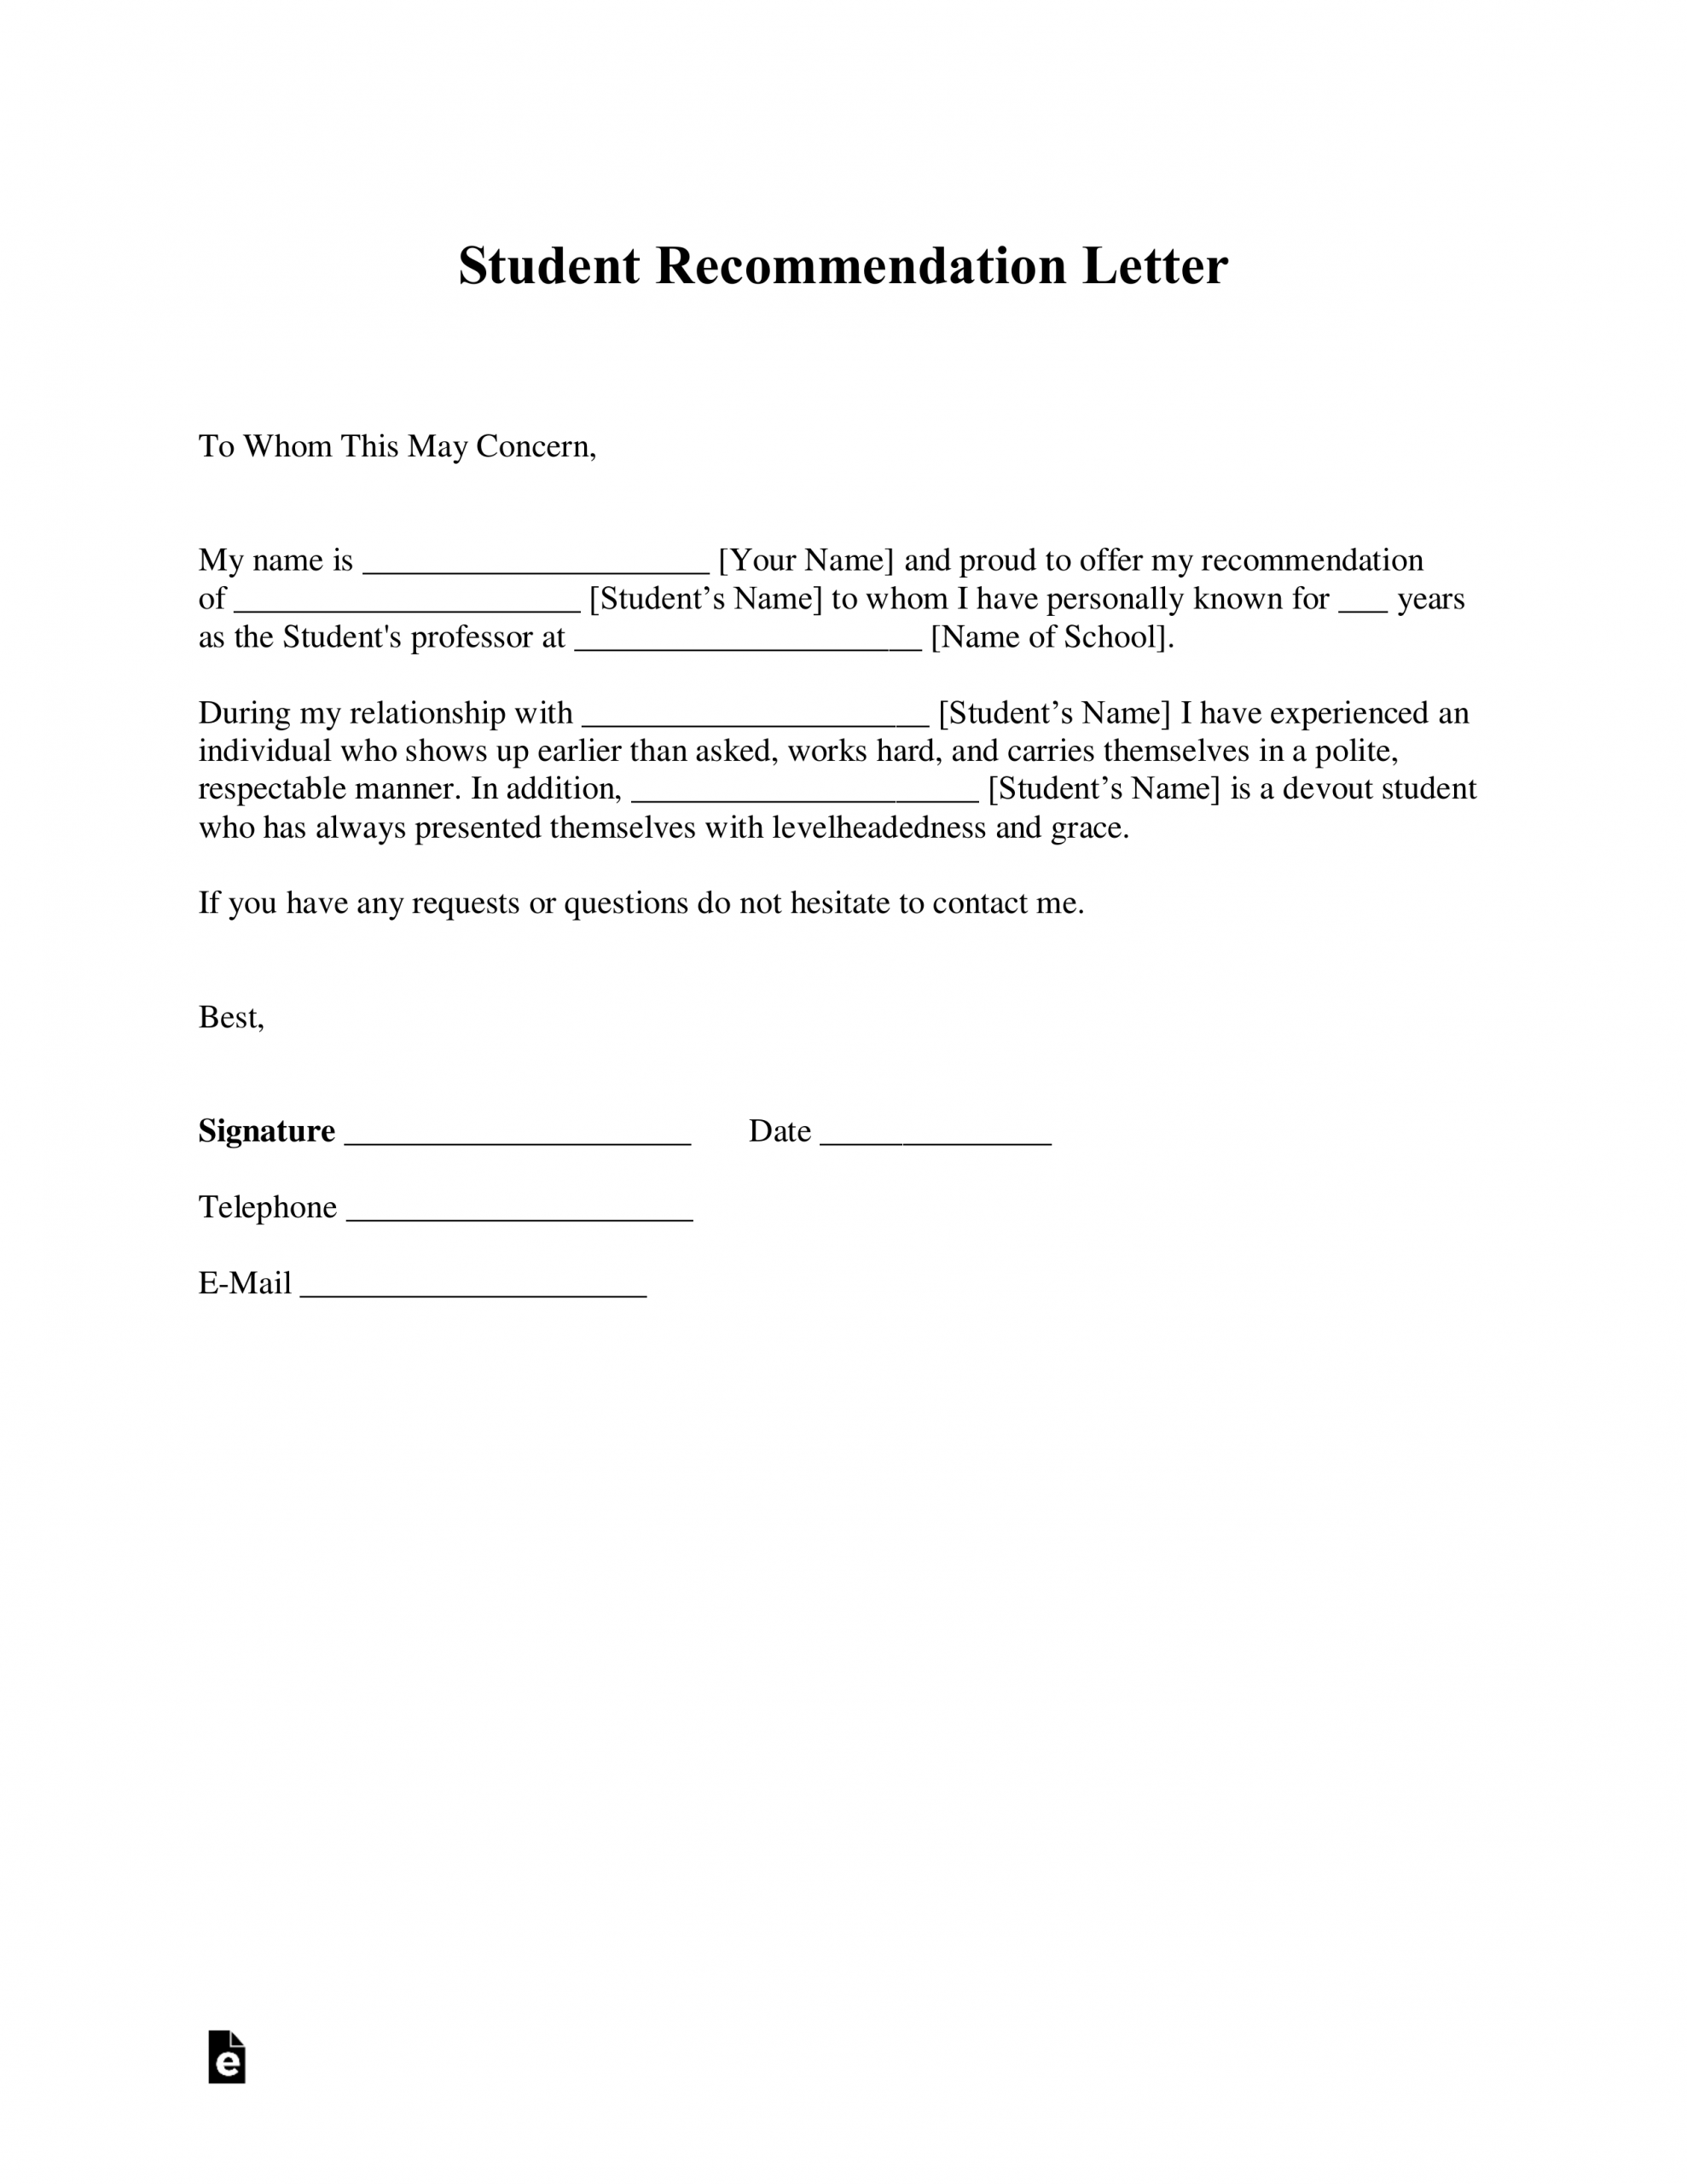 Free Student Recommendation Letter Template With Samples for dimensions 2550 X 3301